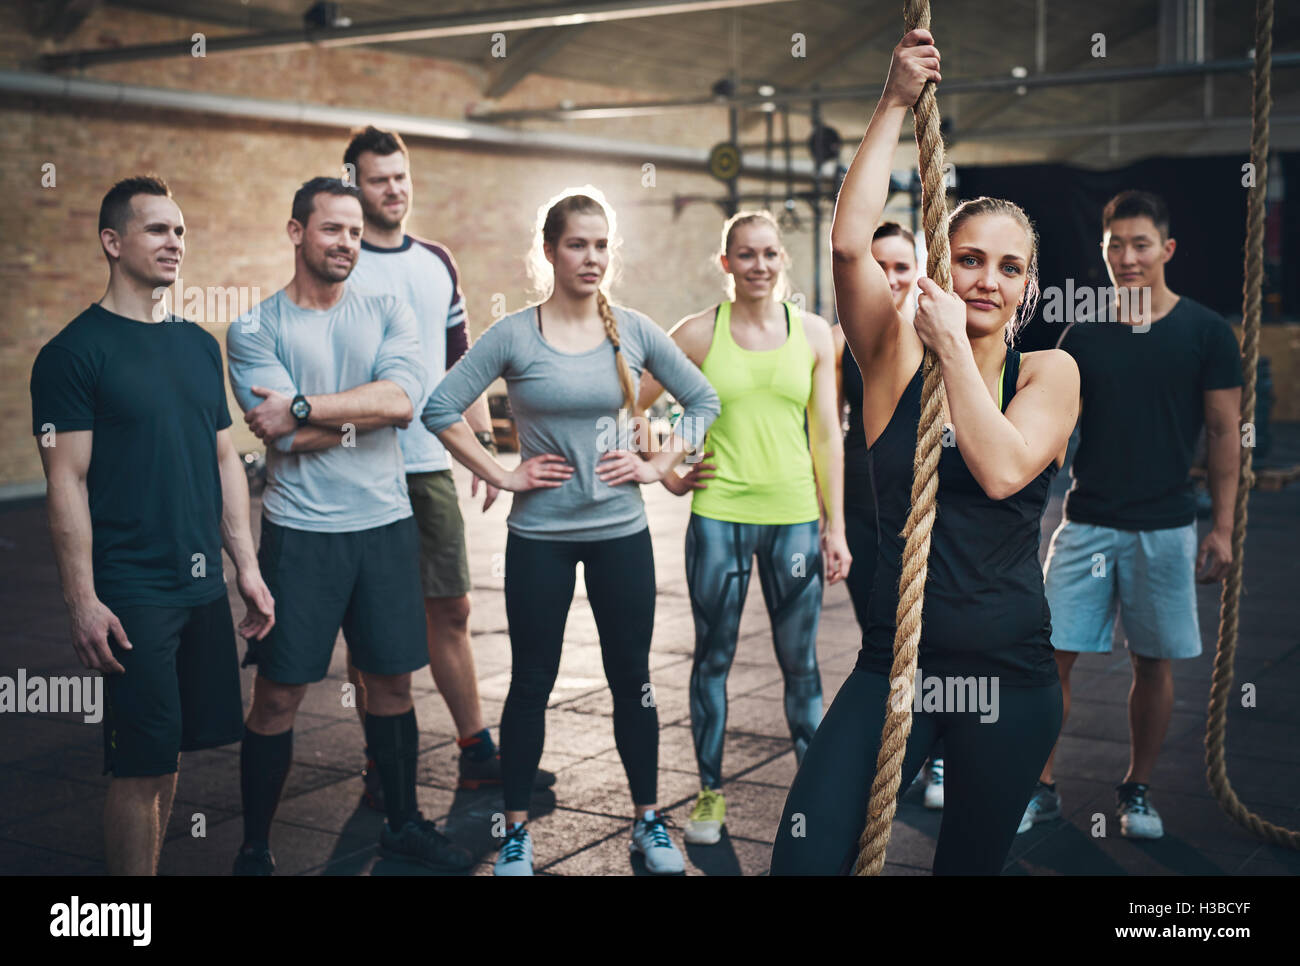 Group of adults watching woman use climbing rope in fitness exercise circuit training regimen - Stock Image